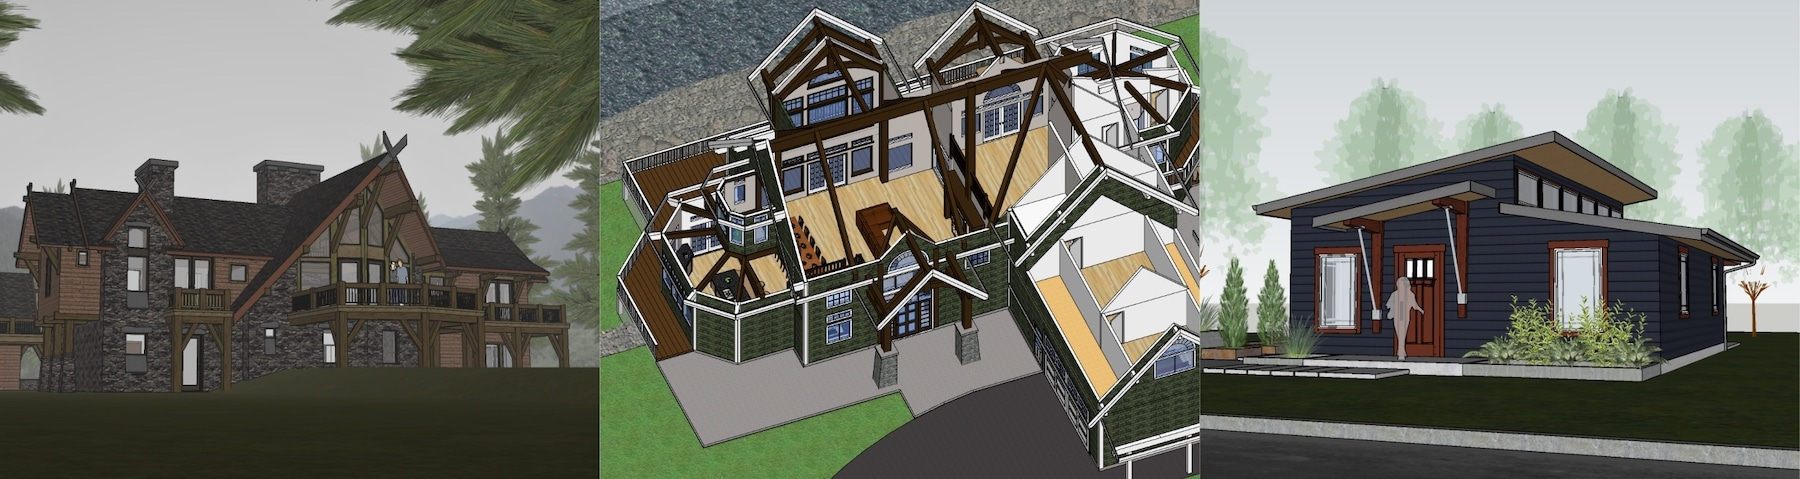 Timber Frame Home Plans | Modern, Rustic, Craftsman, Traditional